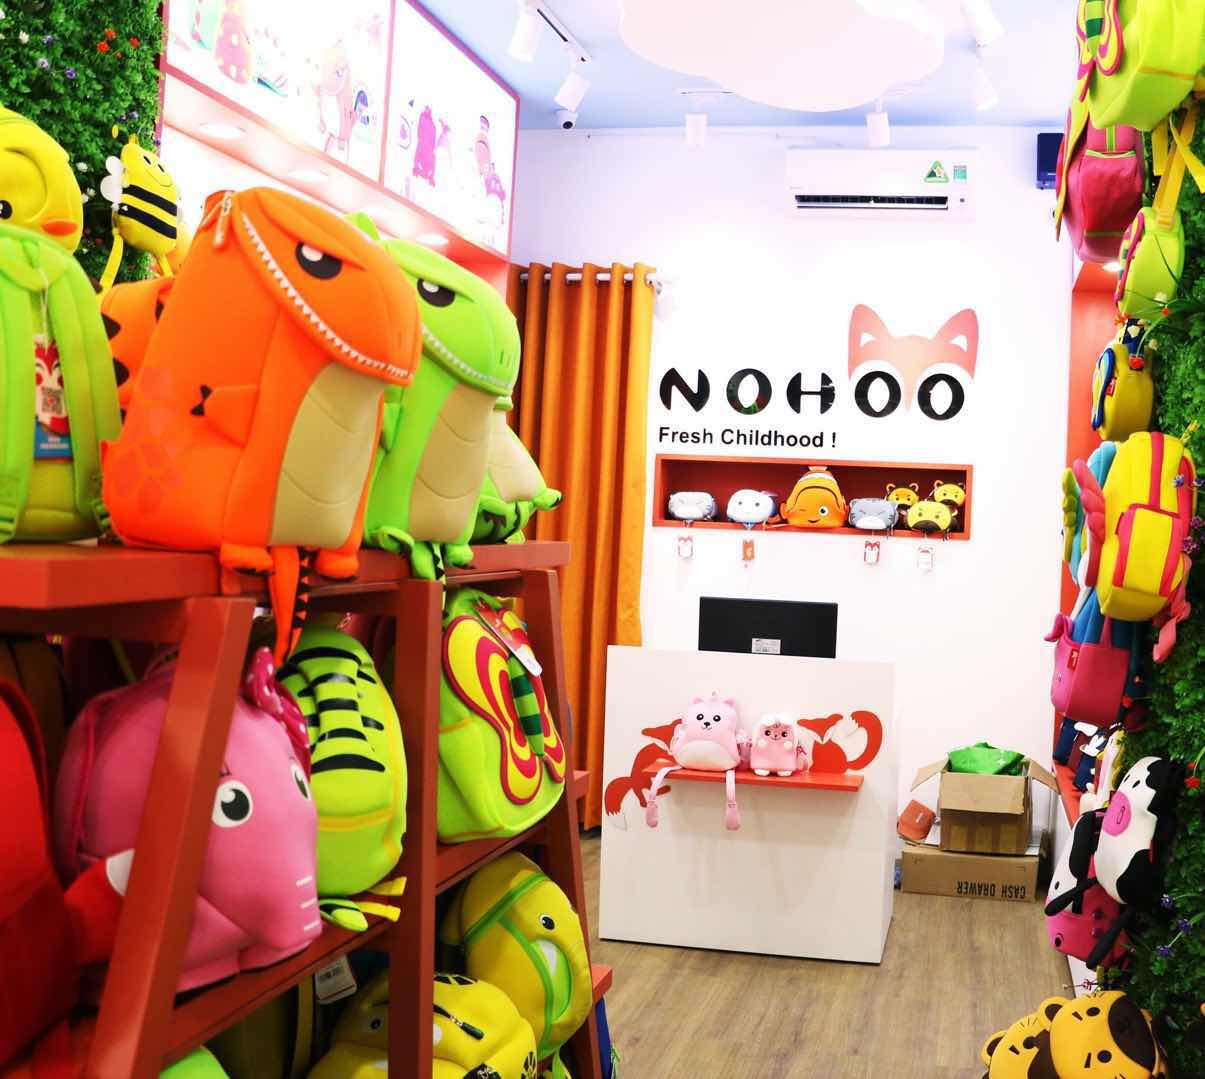 Nohoo Children Products-Vietnams first unique NOHOO backpack franchise store opened-3